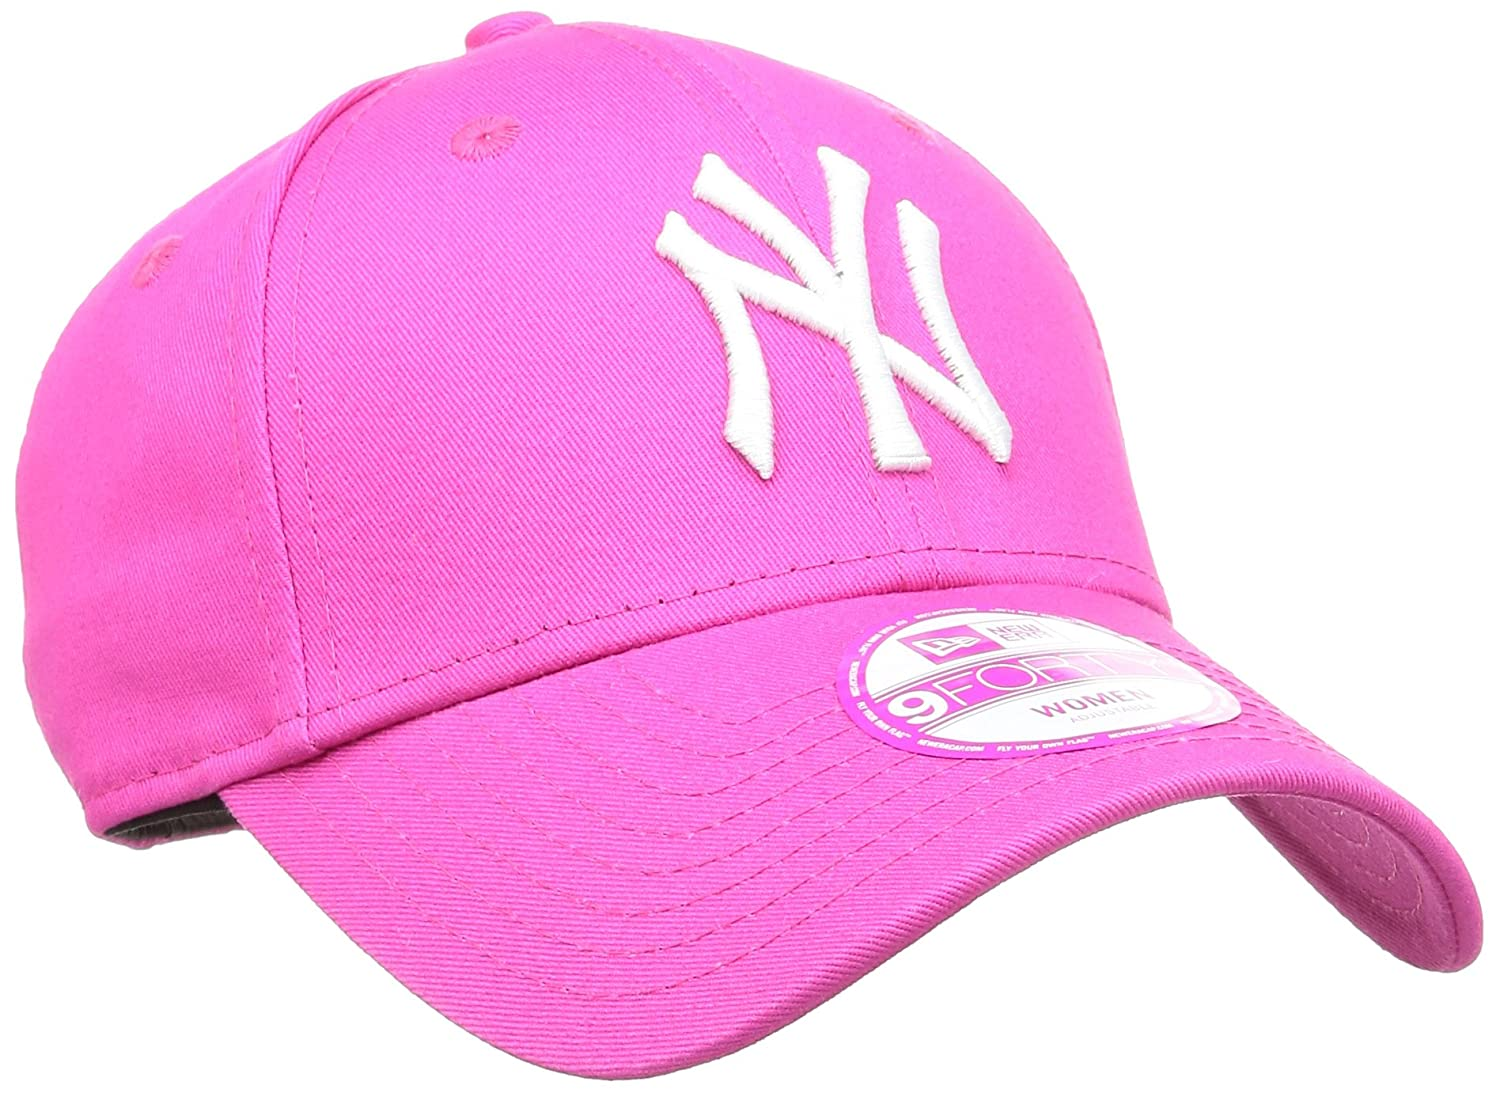 New Era 9Forty Womens Fashion ESS NY Yankees Baseball Cap - Pink White   Amazon.co.uk  Sports   Outdoors 309060713e8